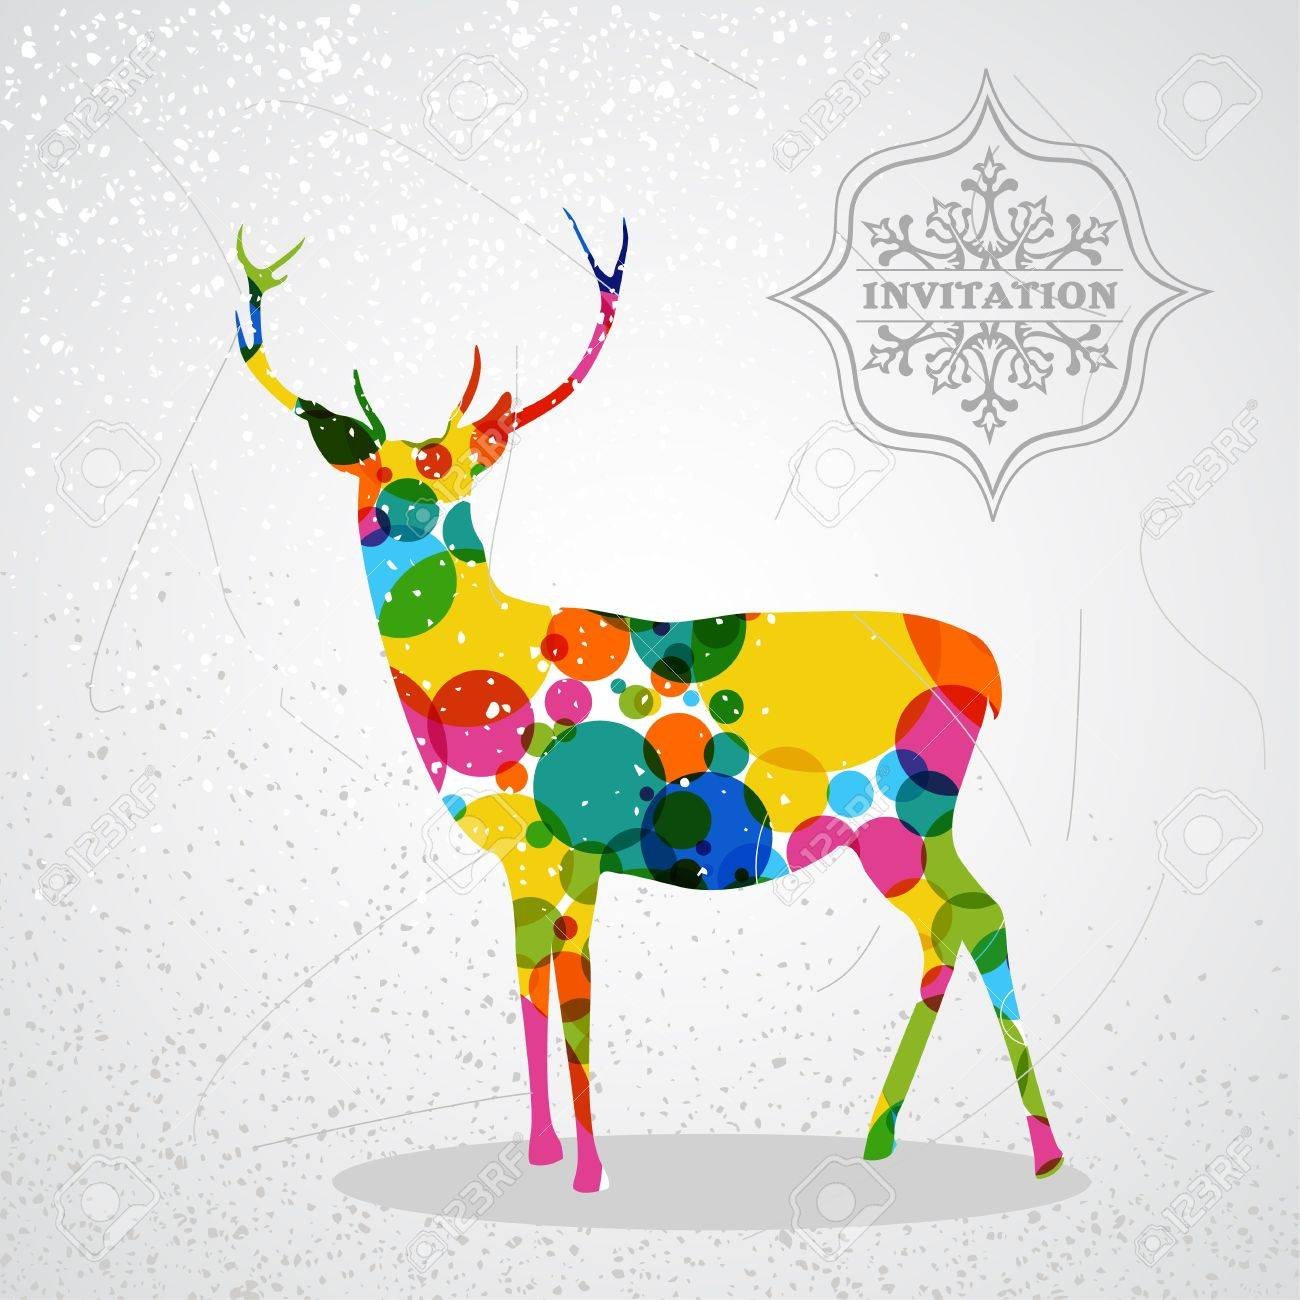 Trendy Christmas Colorful Reindeer Transparent Geometric Elements Grunge Background Vector With Transparency Organized In Layers